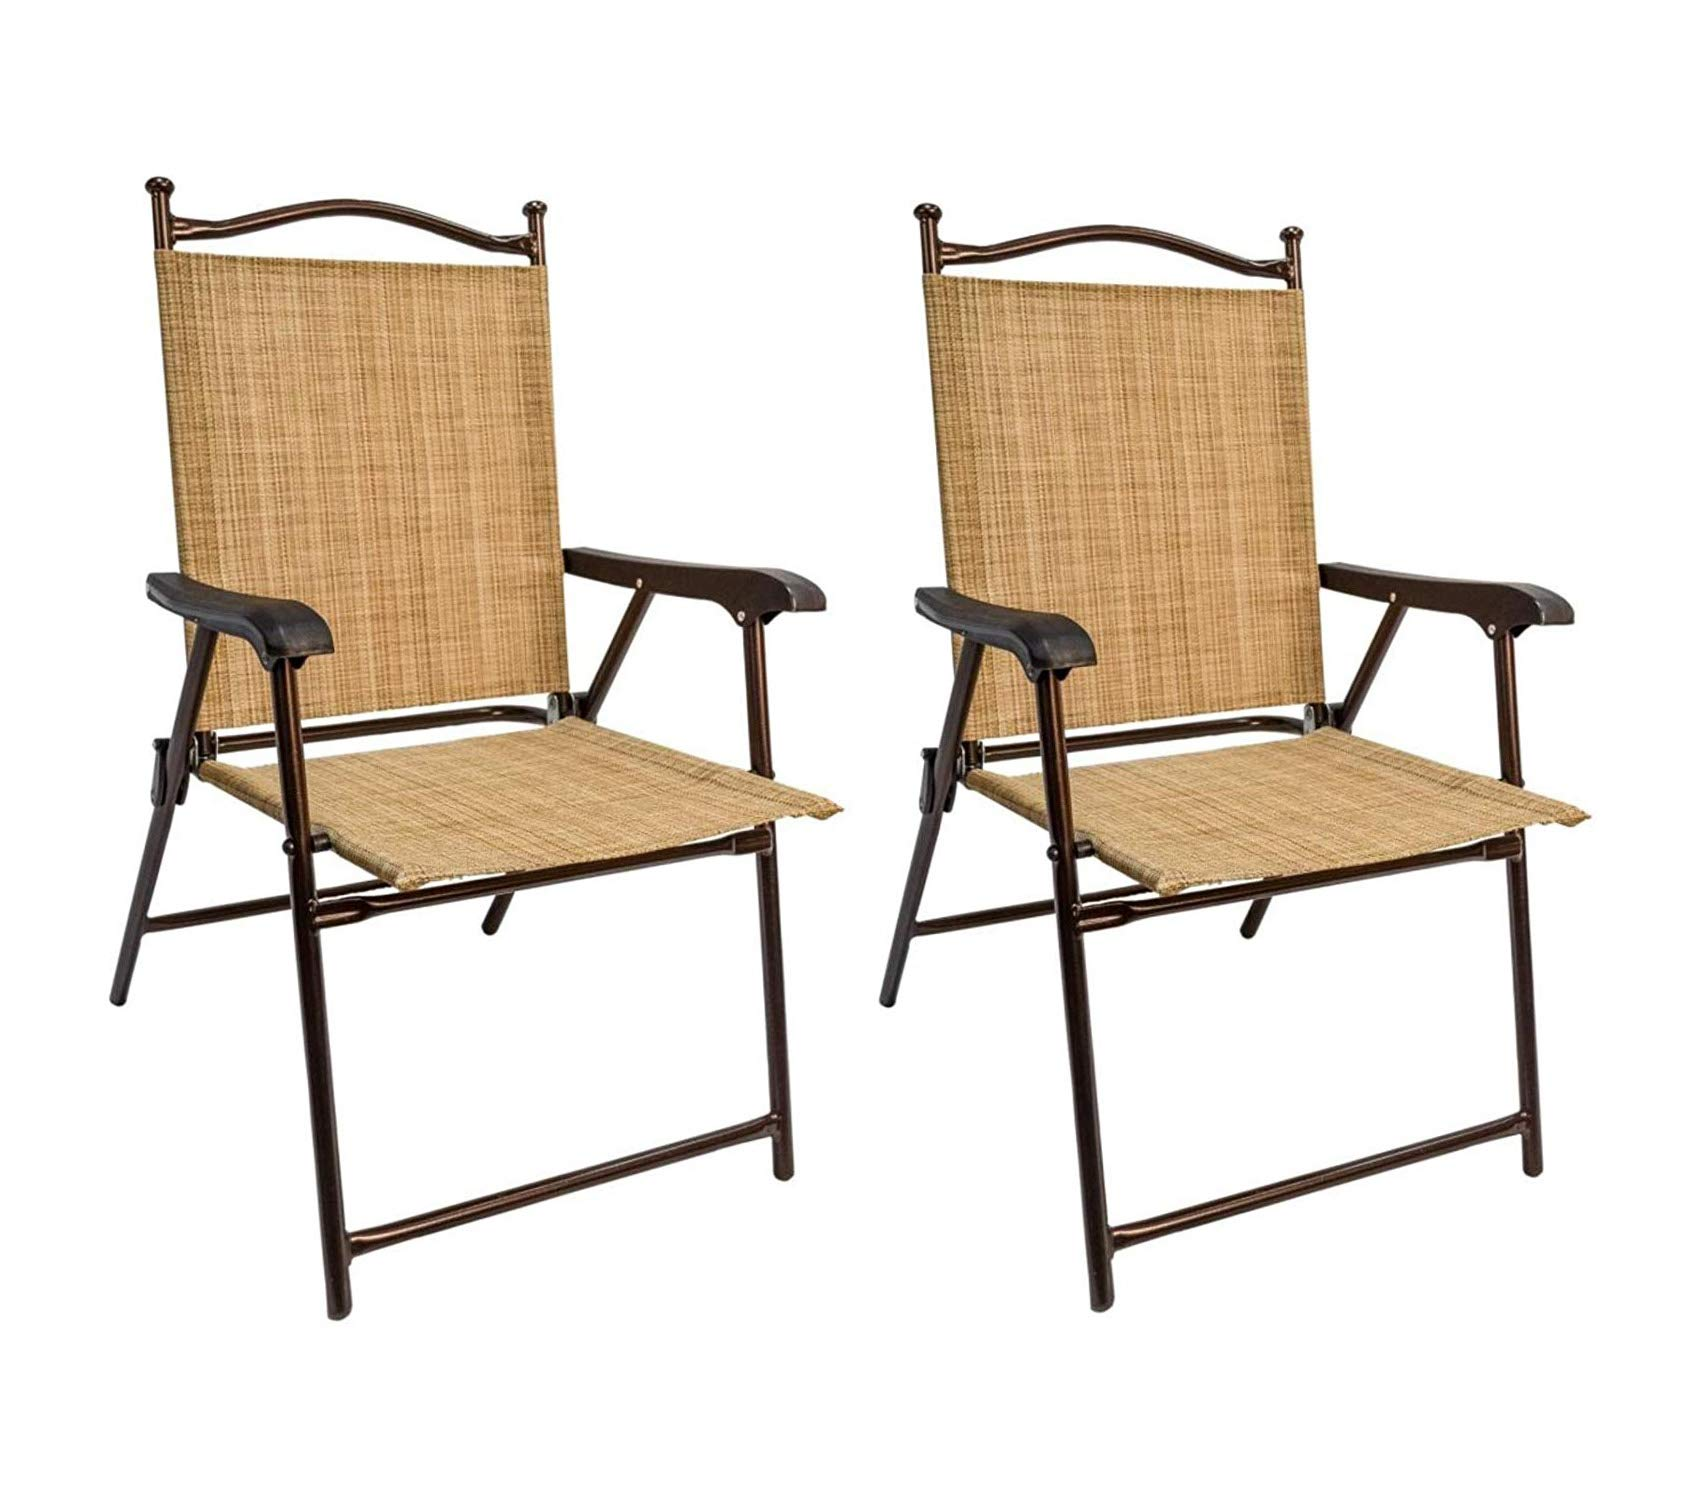 Patio Outdoor Garden Premium Greendale Home Fashion Outdoor Sling Back Chairs, Set of 2